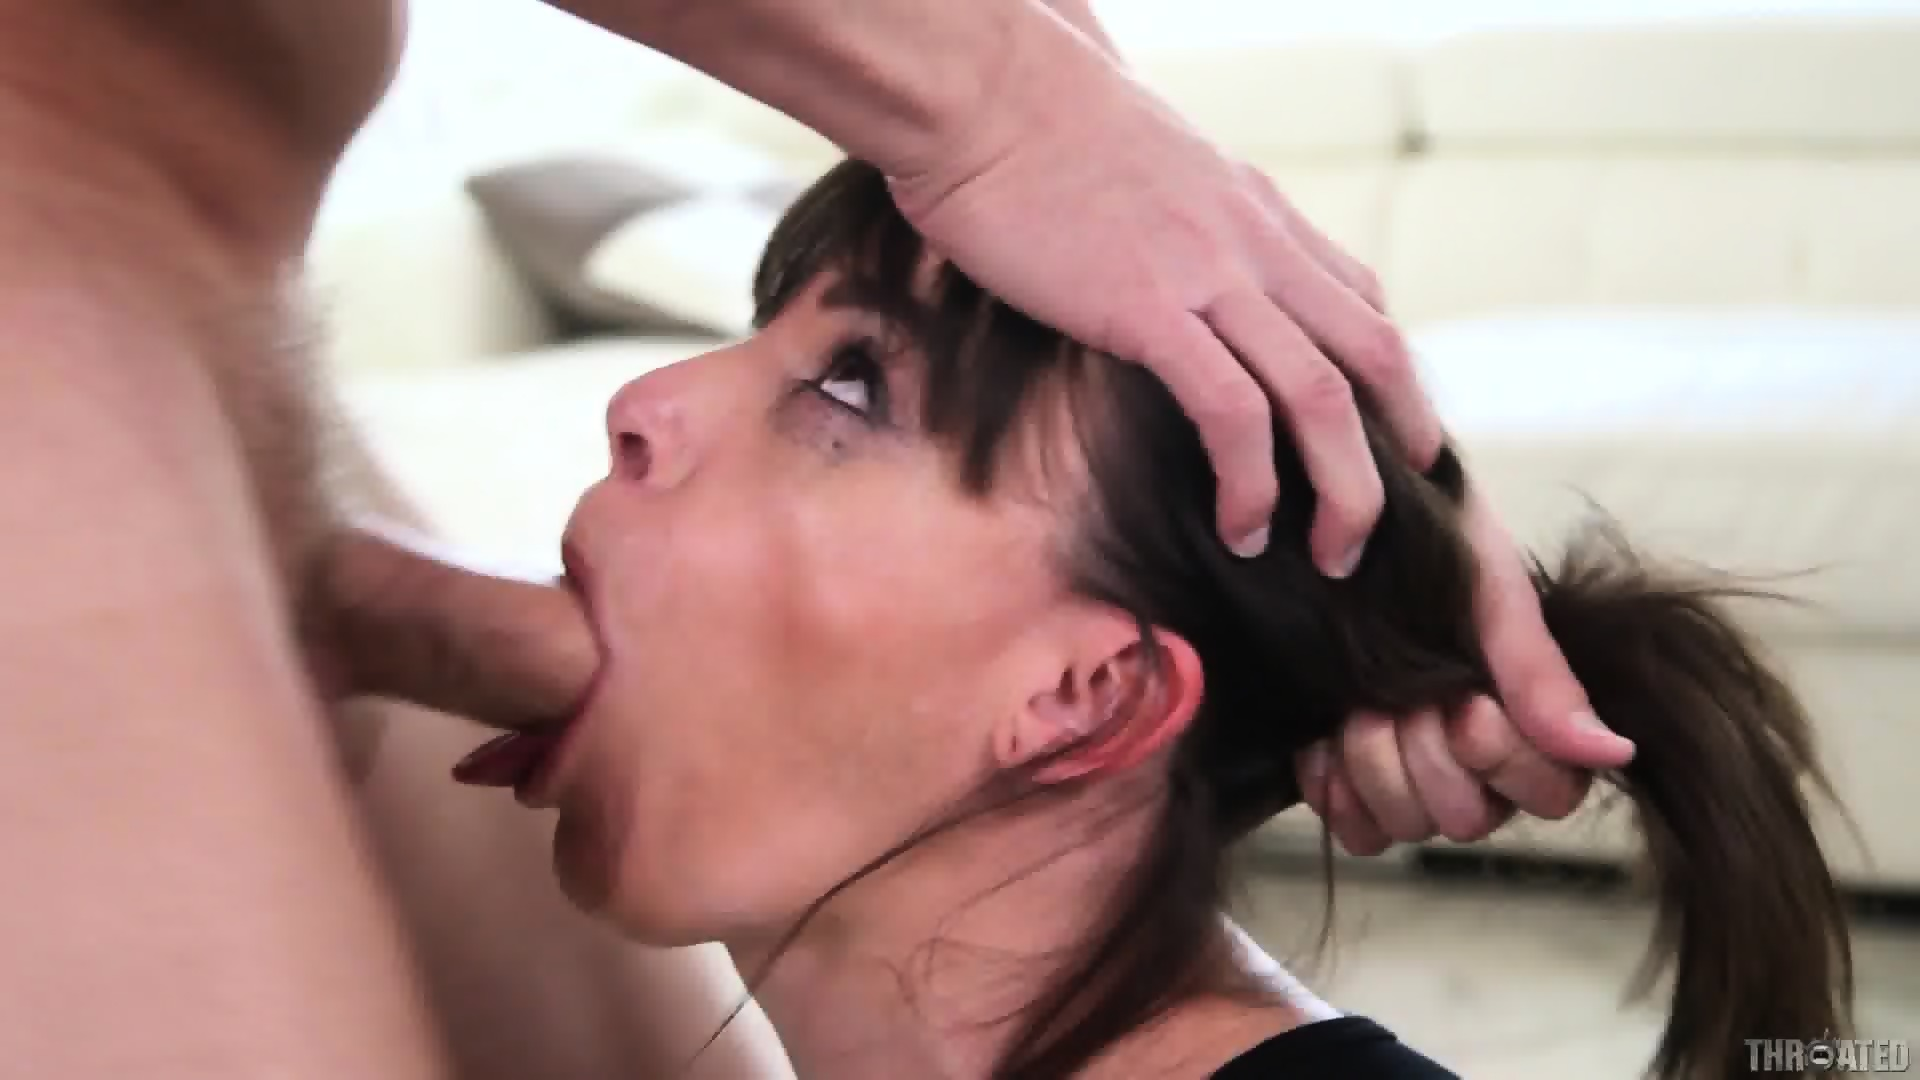 Deep throat cumming